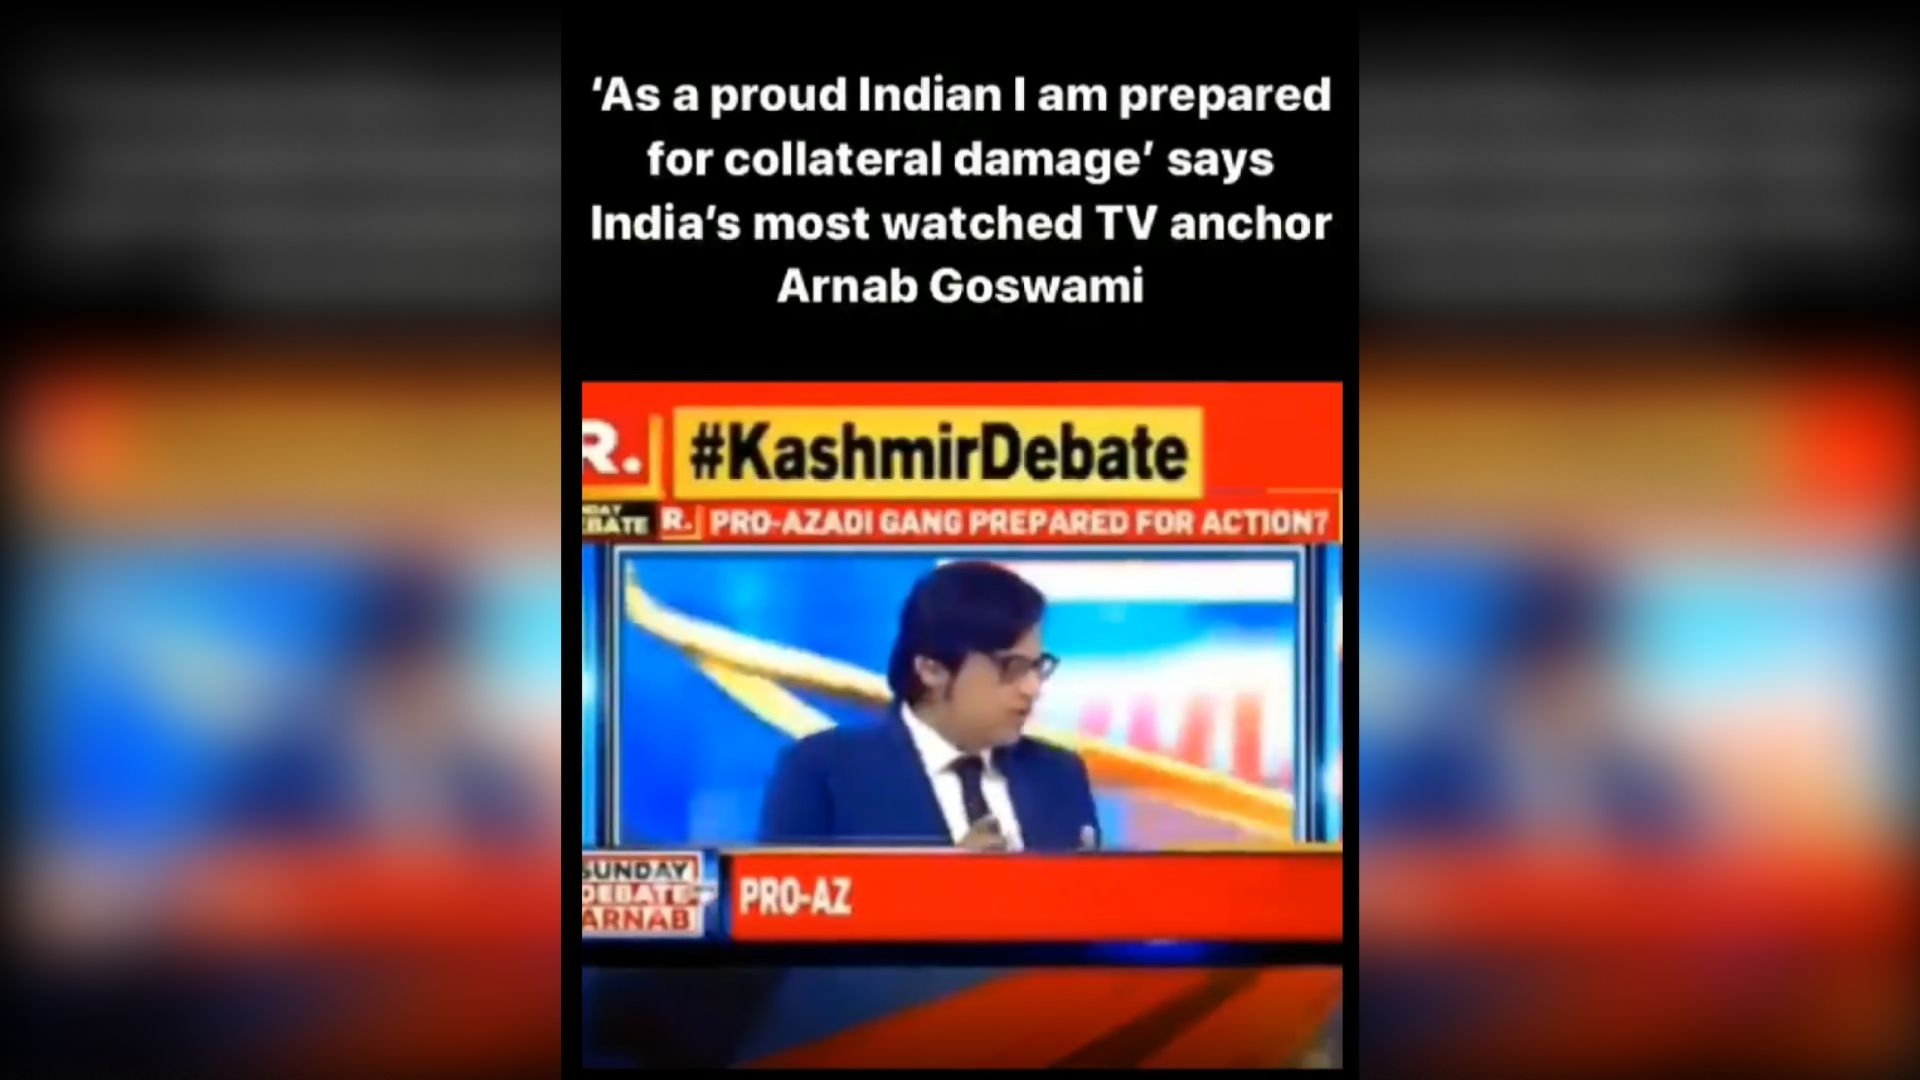 Did Arnab Goswami Really Call People of J&K 'Collateral Damage'?